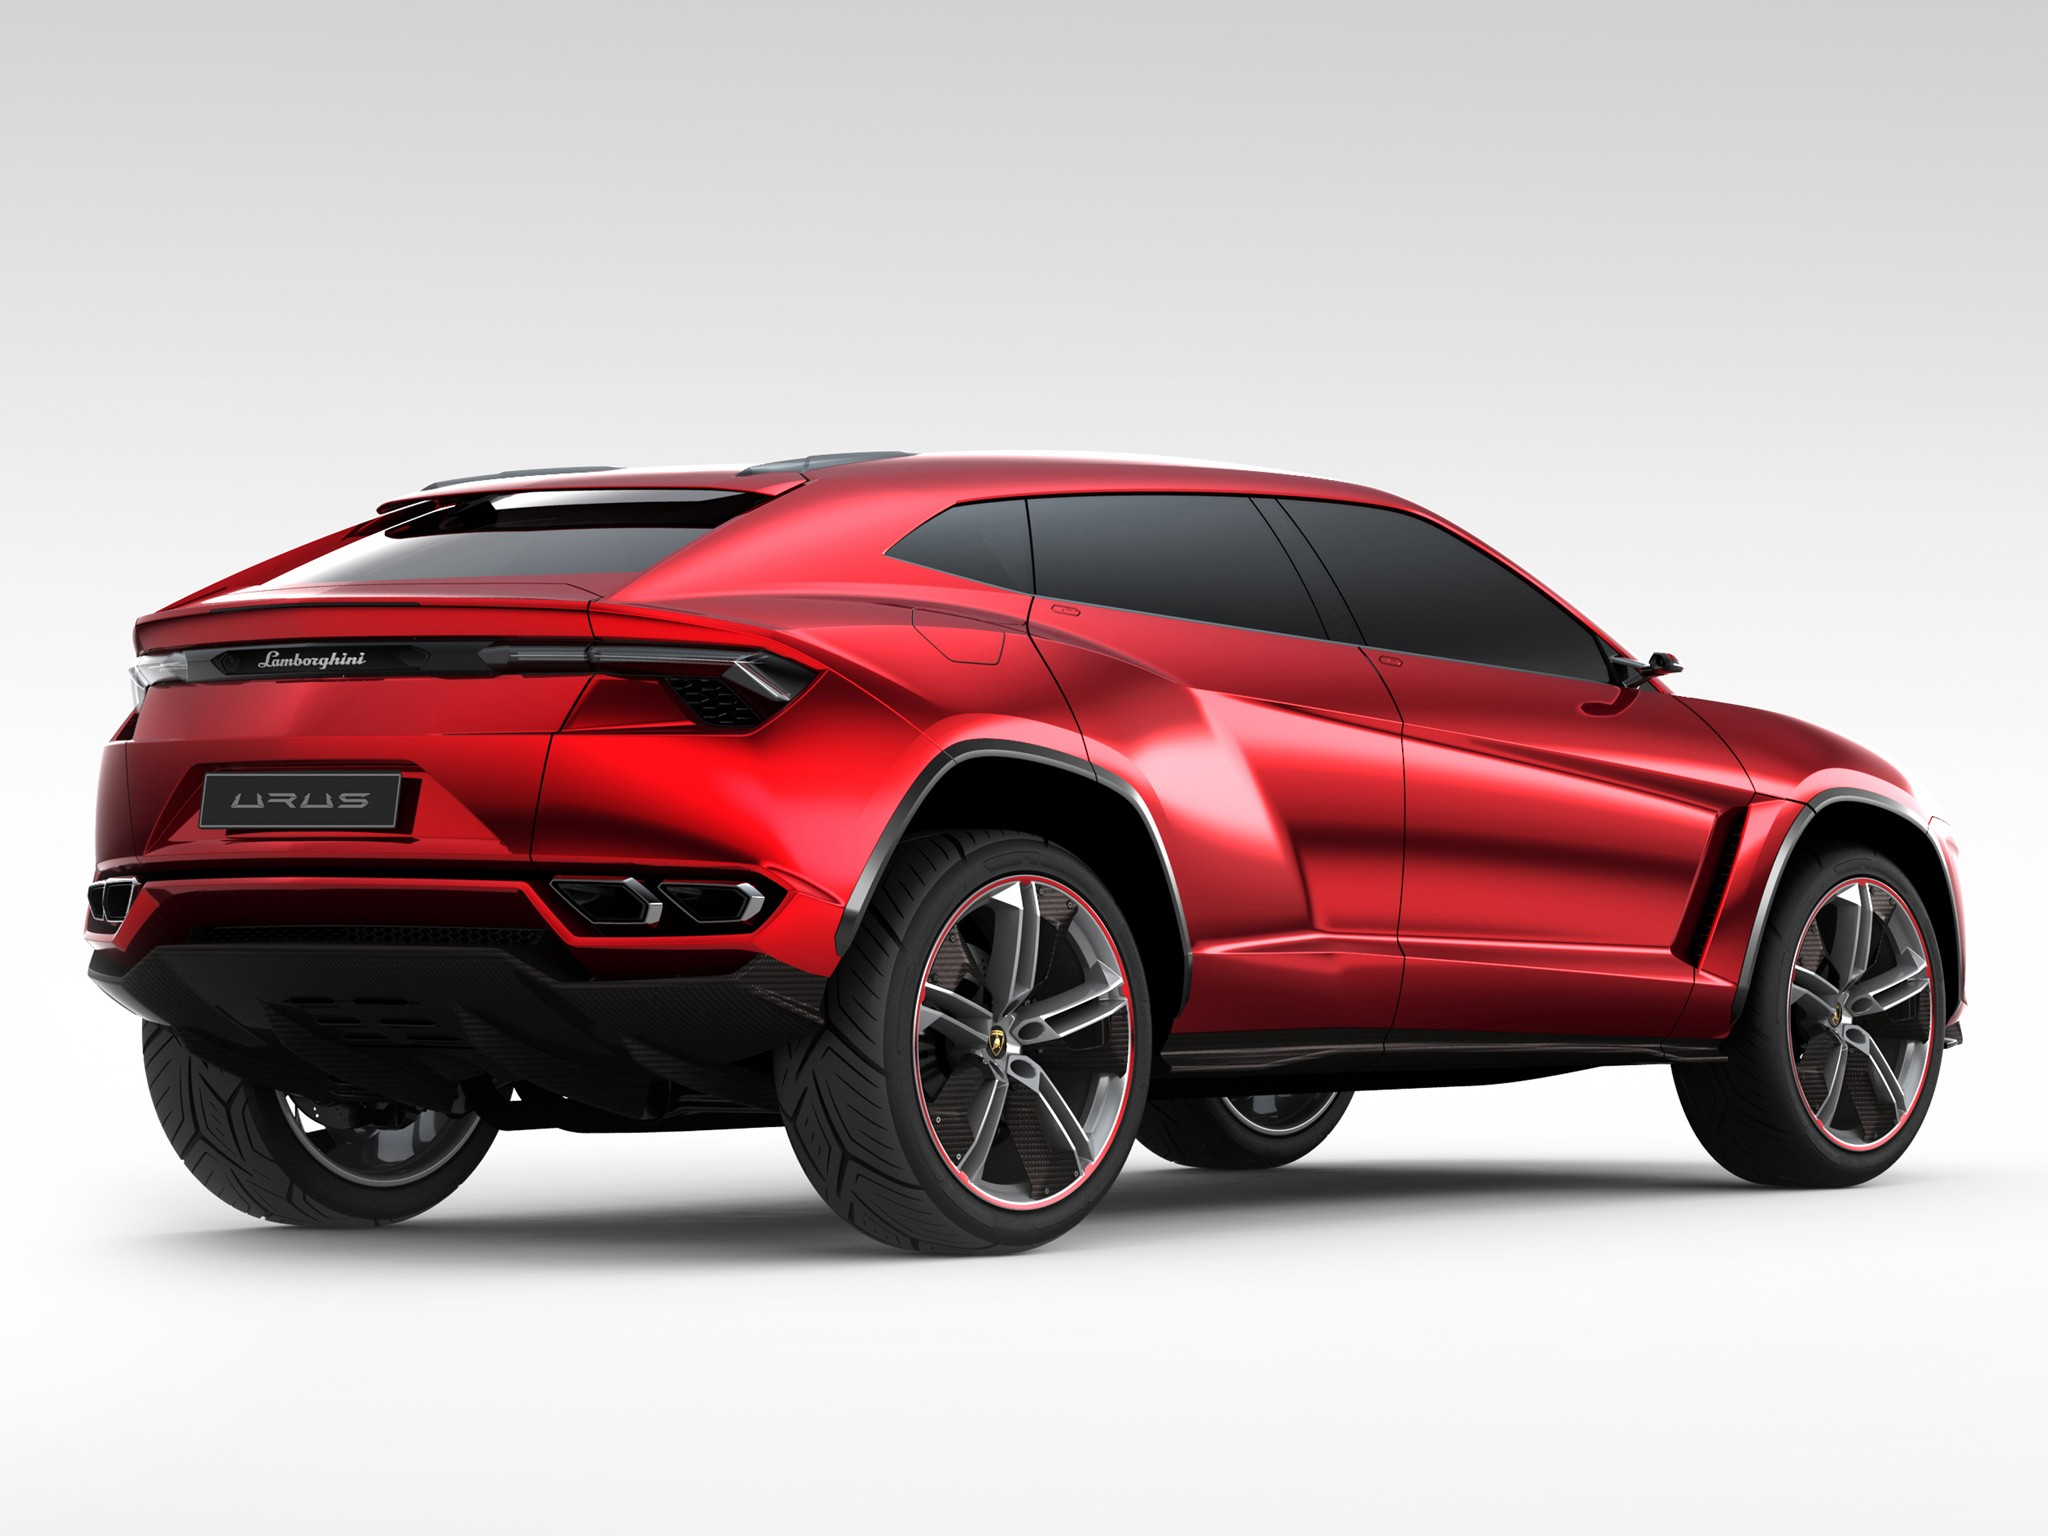 Superb ... Lamborghini Urus SUV (concept Version) ...